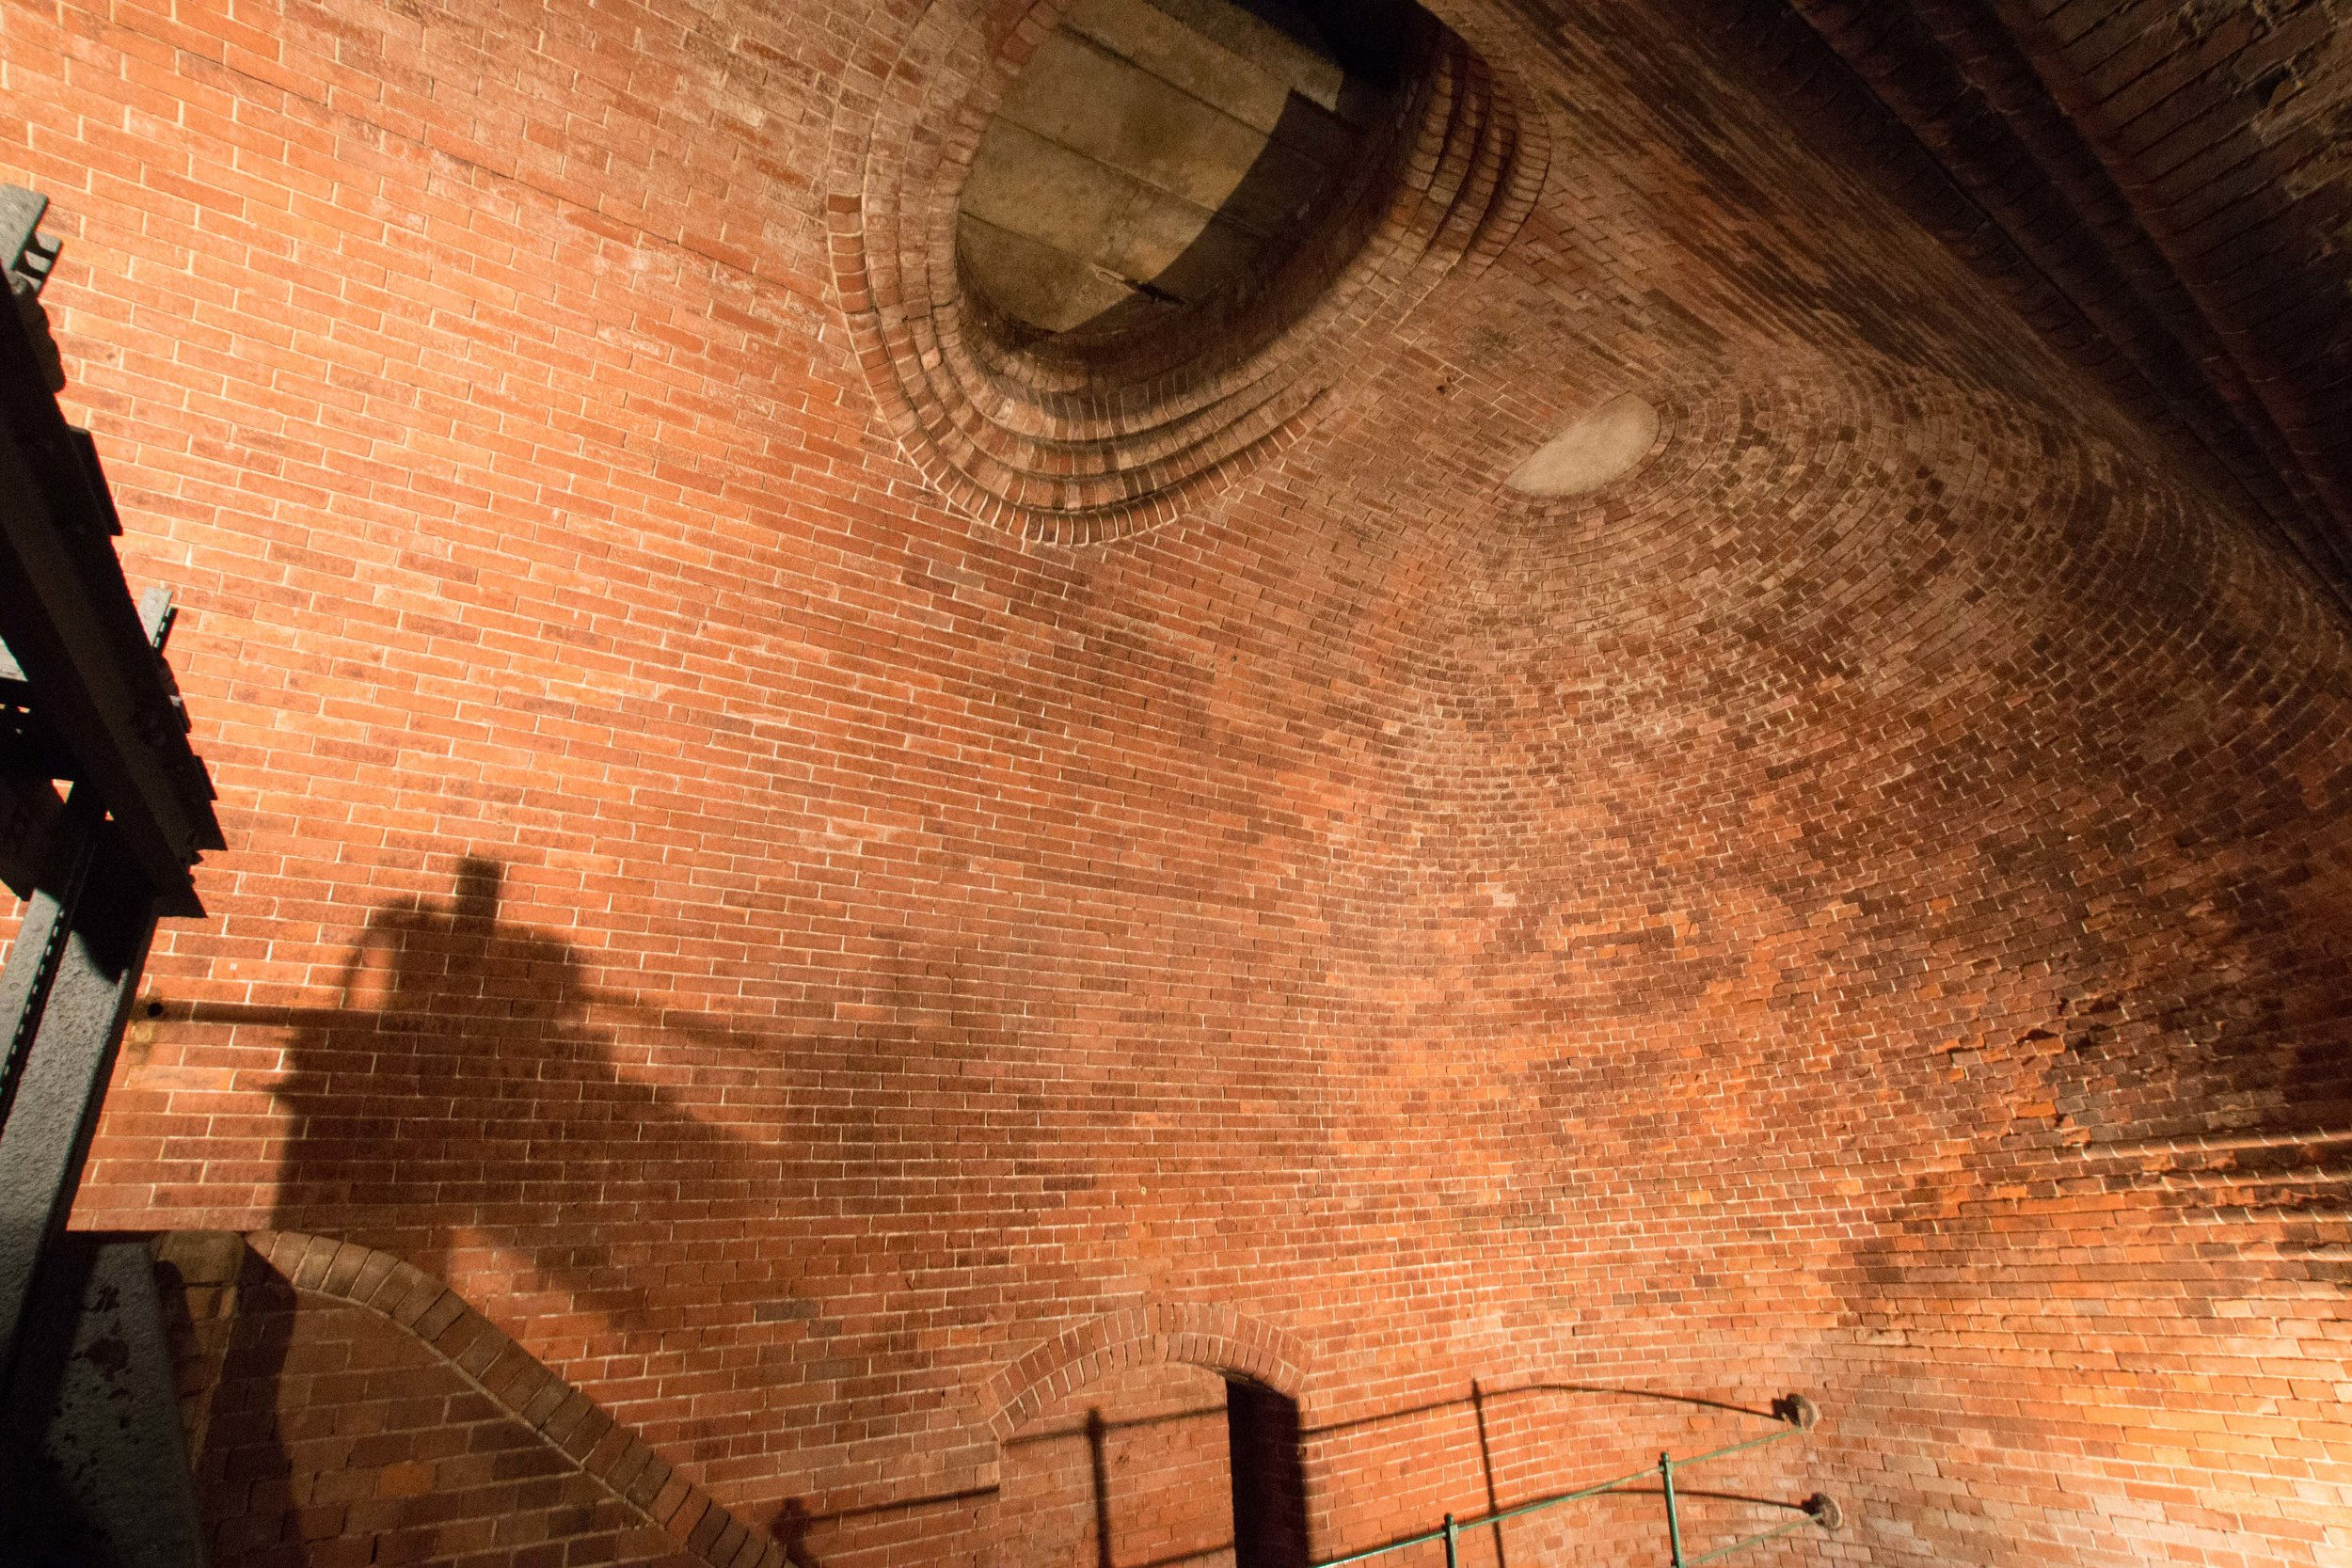 Amazing brick work - It's hard to tell, but that is a curved, oval shape, made from rectangular bricks. Seriously impressive Masonry!